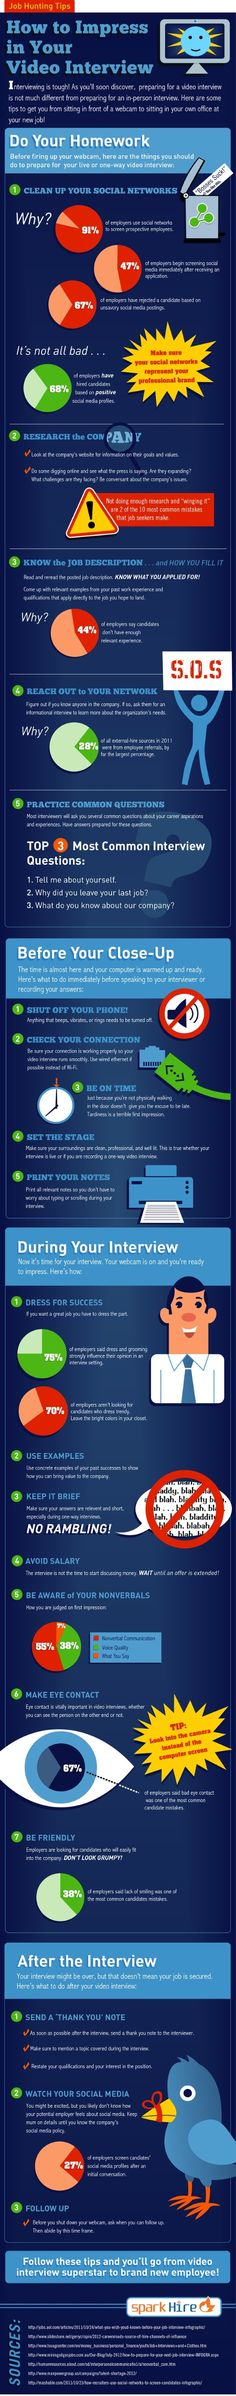 How to Impress During Your Next Virtual Job Interview #Infographic